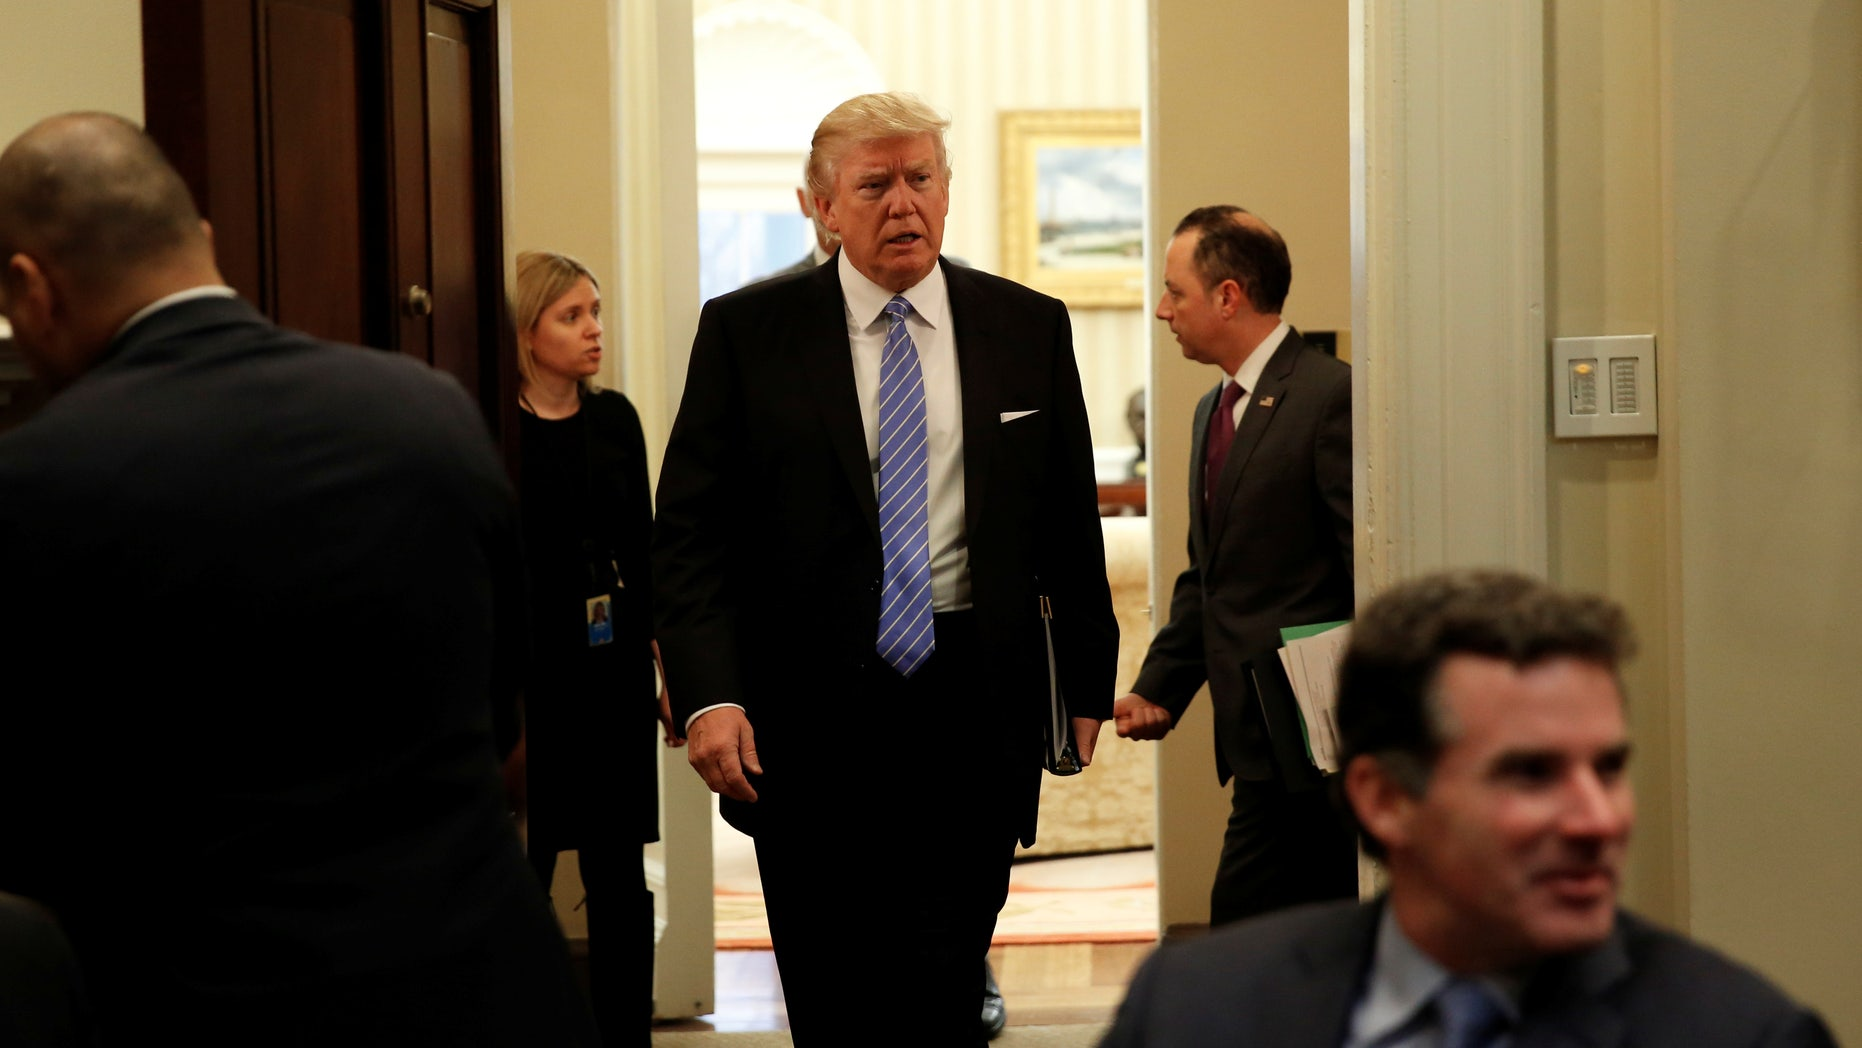 U.S. President Donald Trump arrives for a meeting with business leaders in the Roosevelt Room of the White House in Washington January 23, 2017. (REUTERS/Kevin Lamarque)